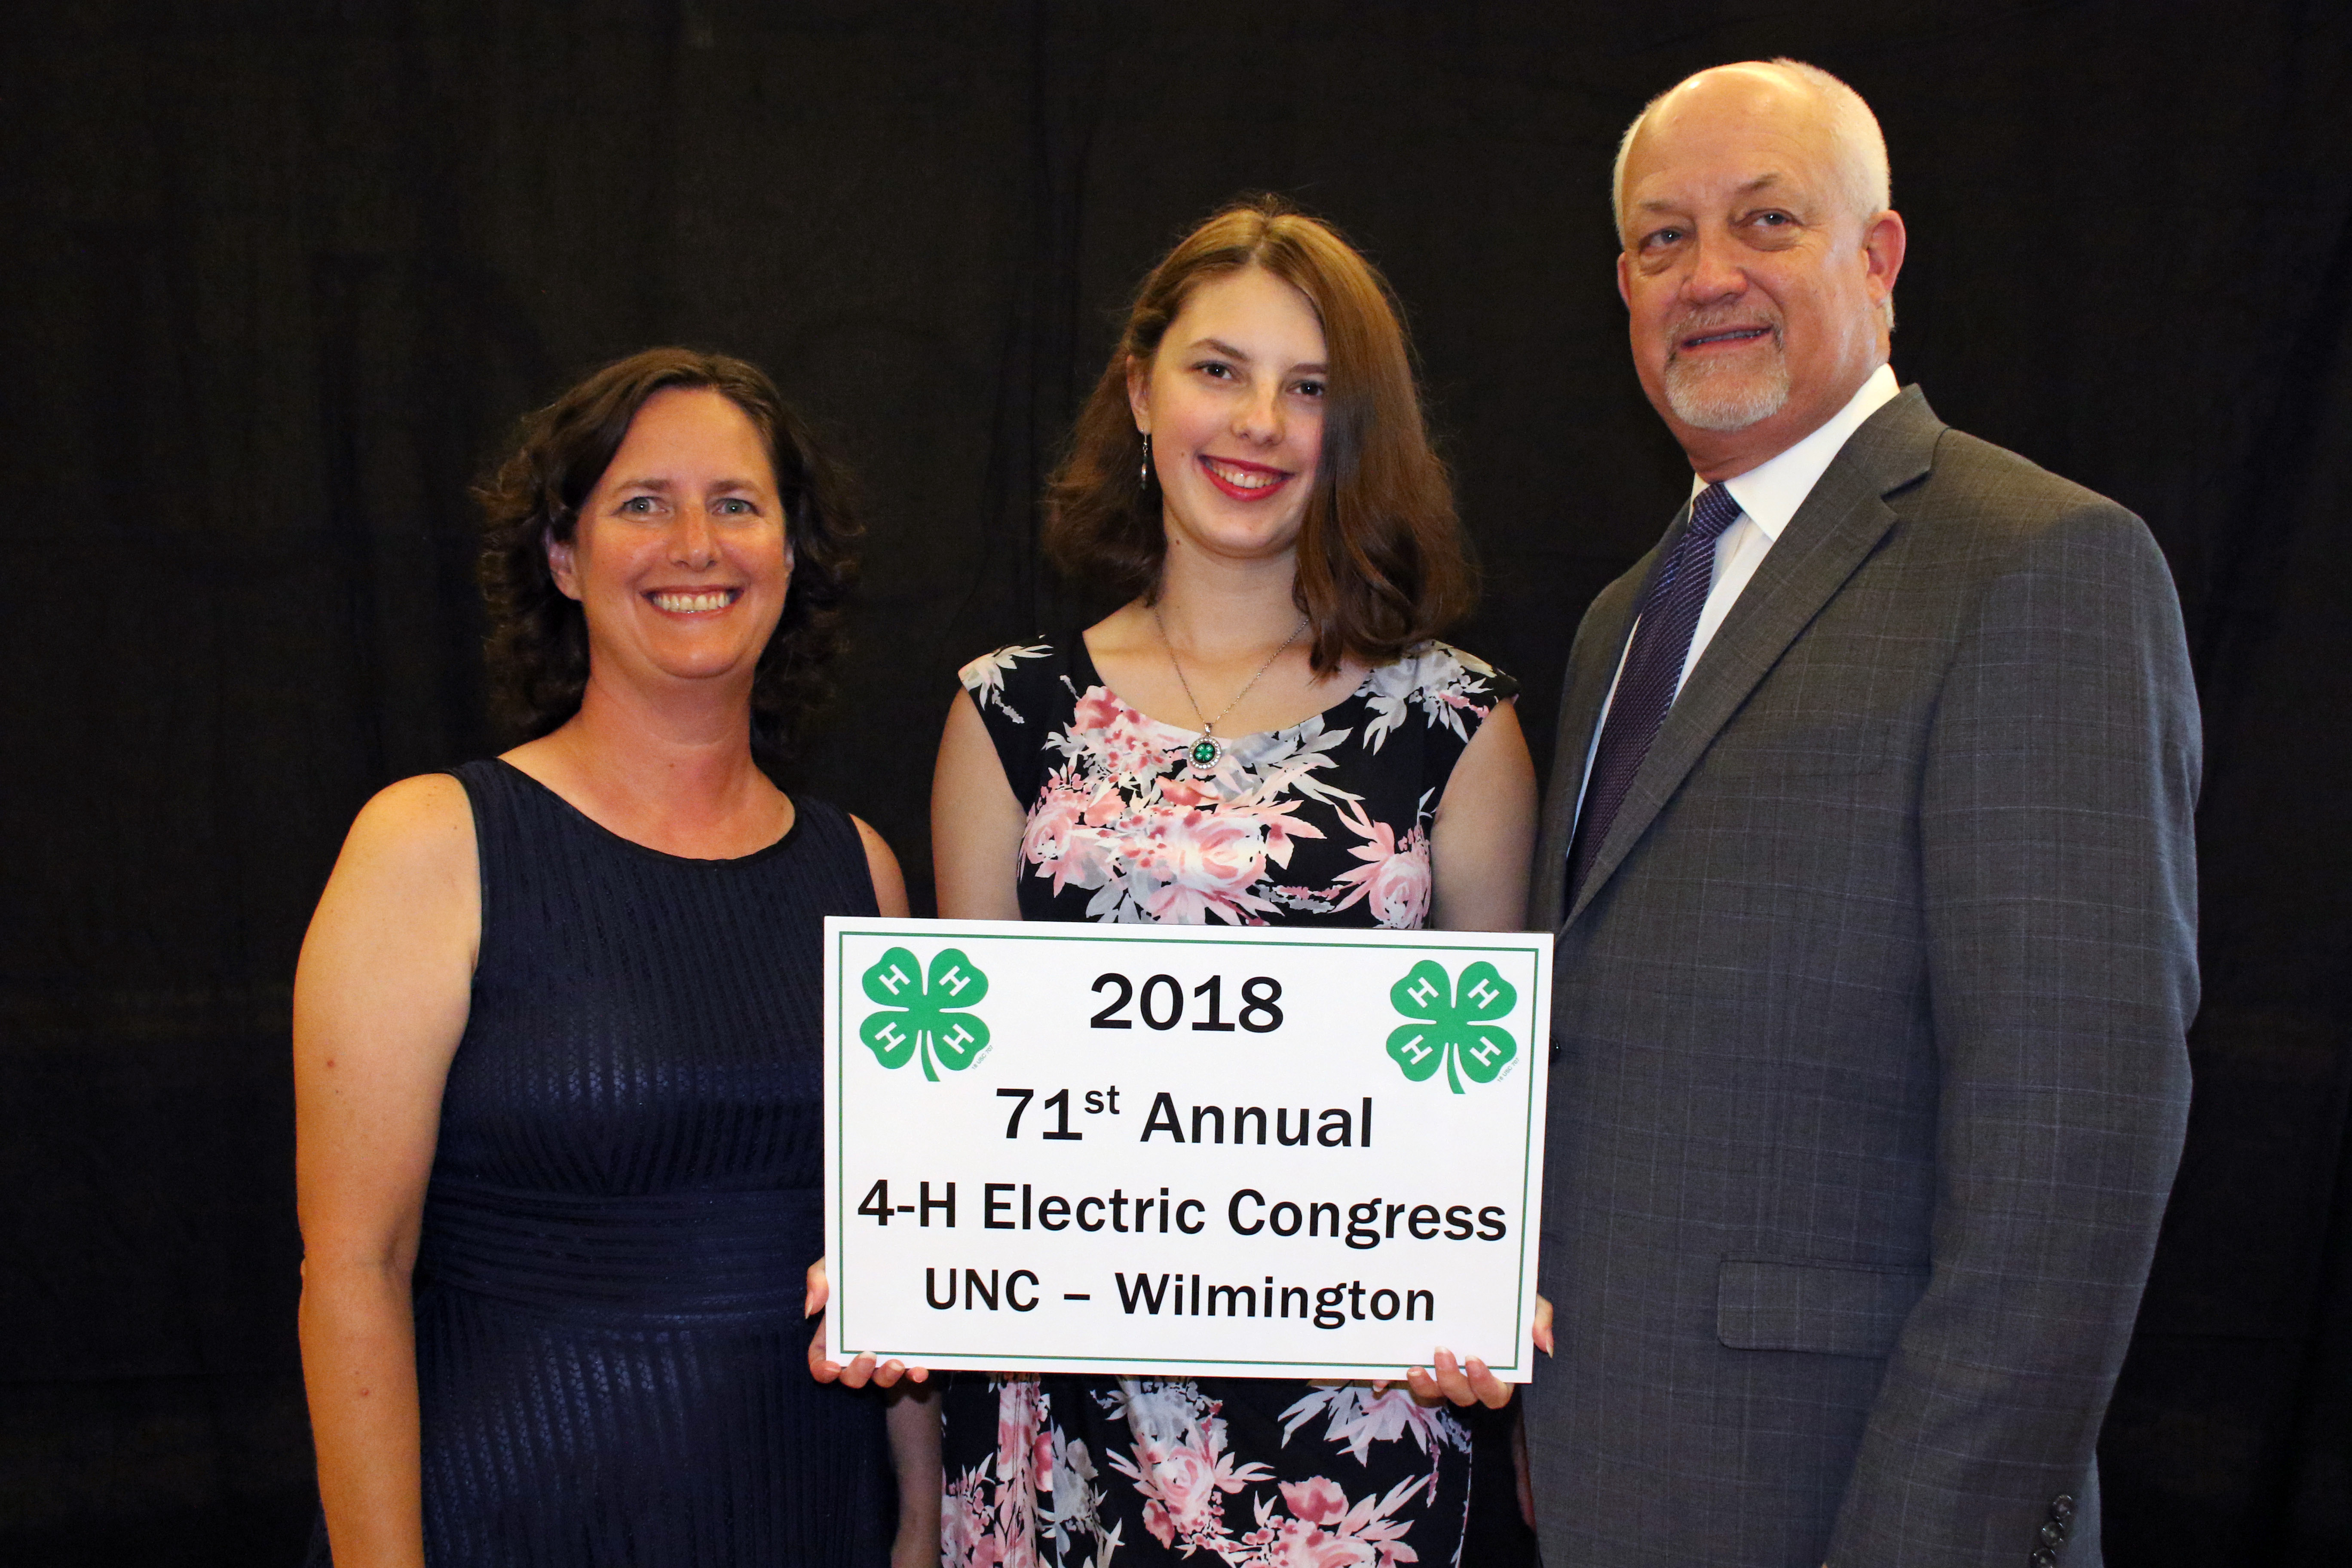 Pictured from left are Sherri Allen, Chloe Allen, daughter of James and Sherri Allen and Wayne Huddleston, account manager with Duke Energy.